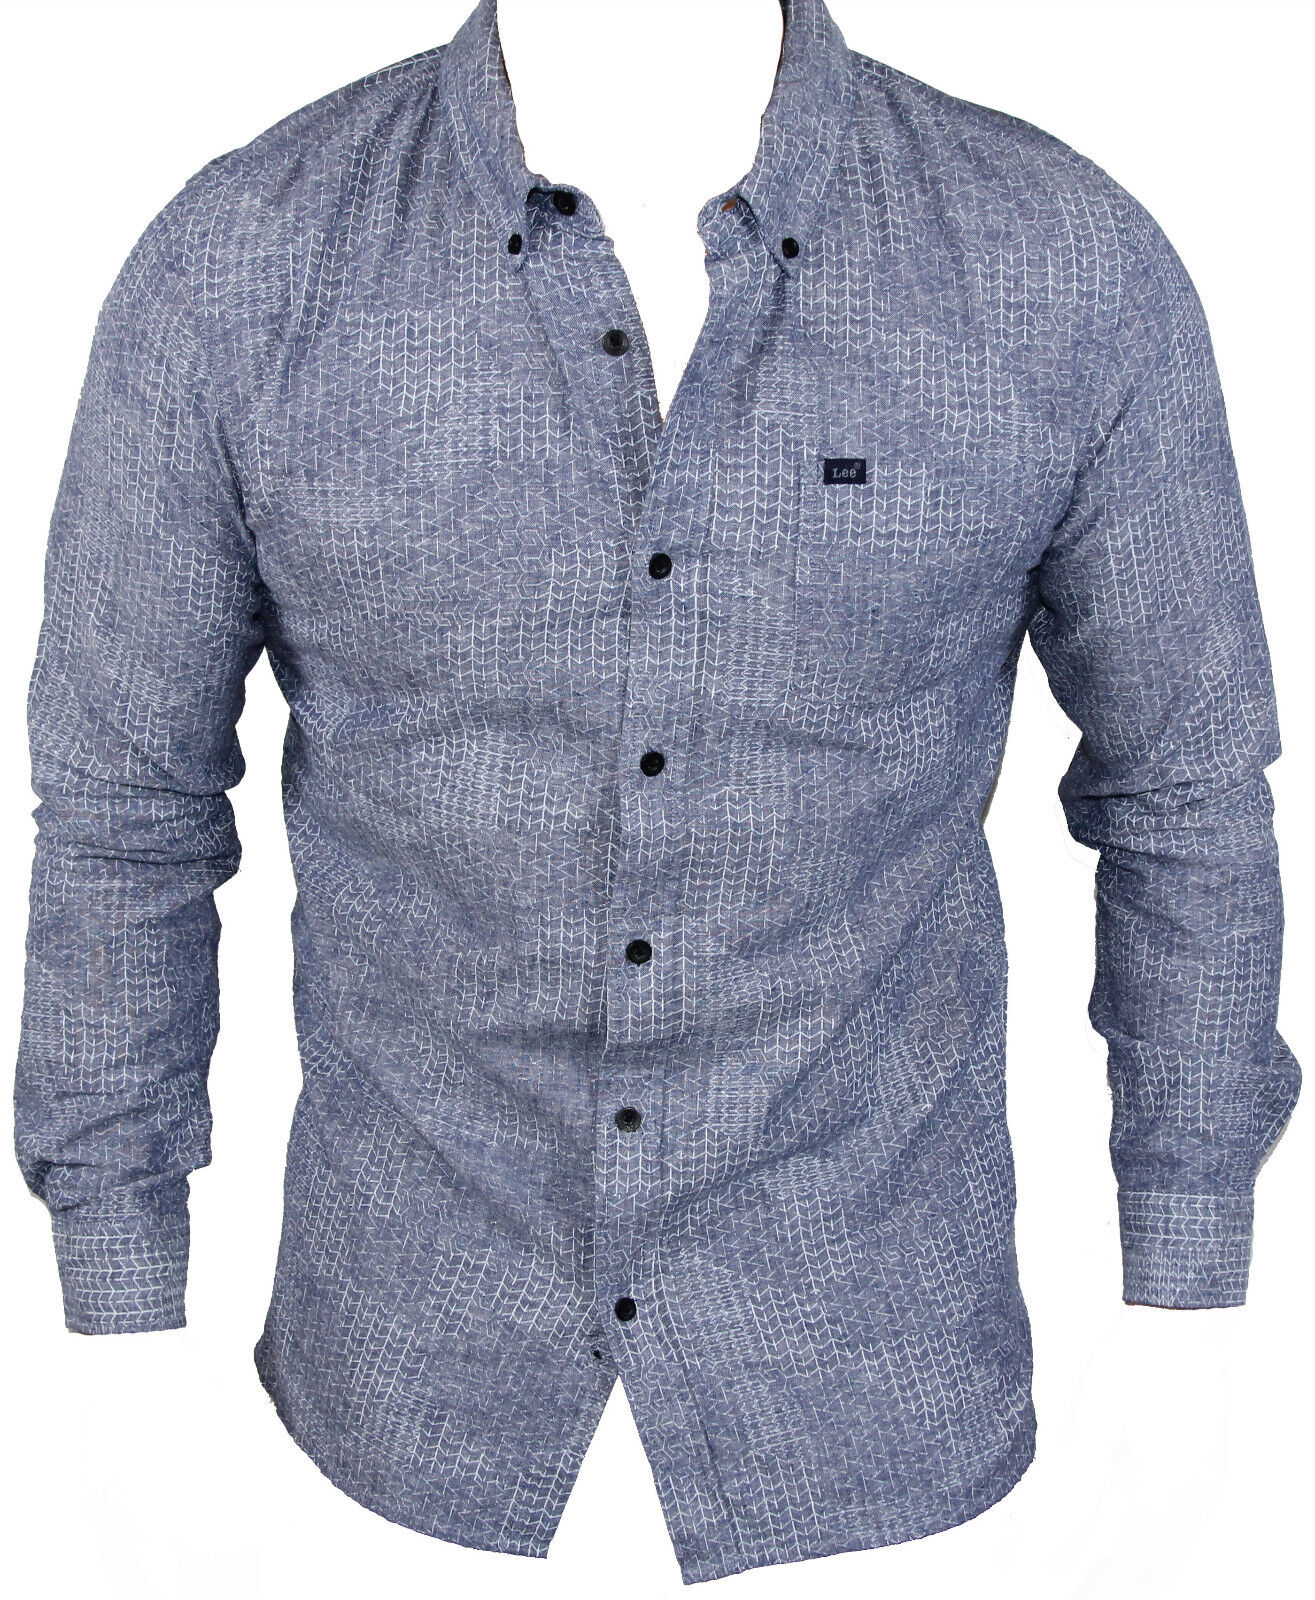 New Lee Mens Button Up Casual Shirt in bluee Colour Size S